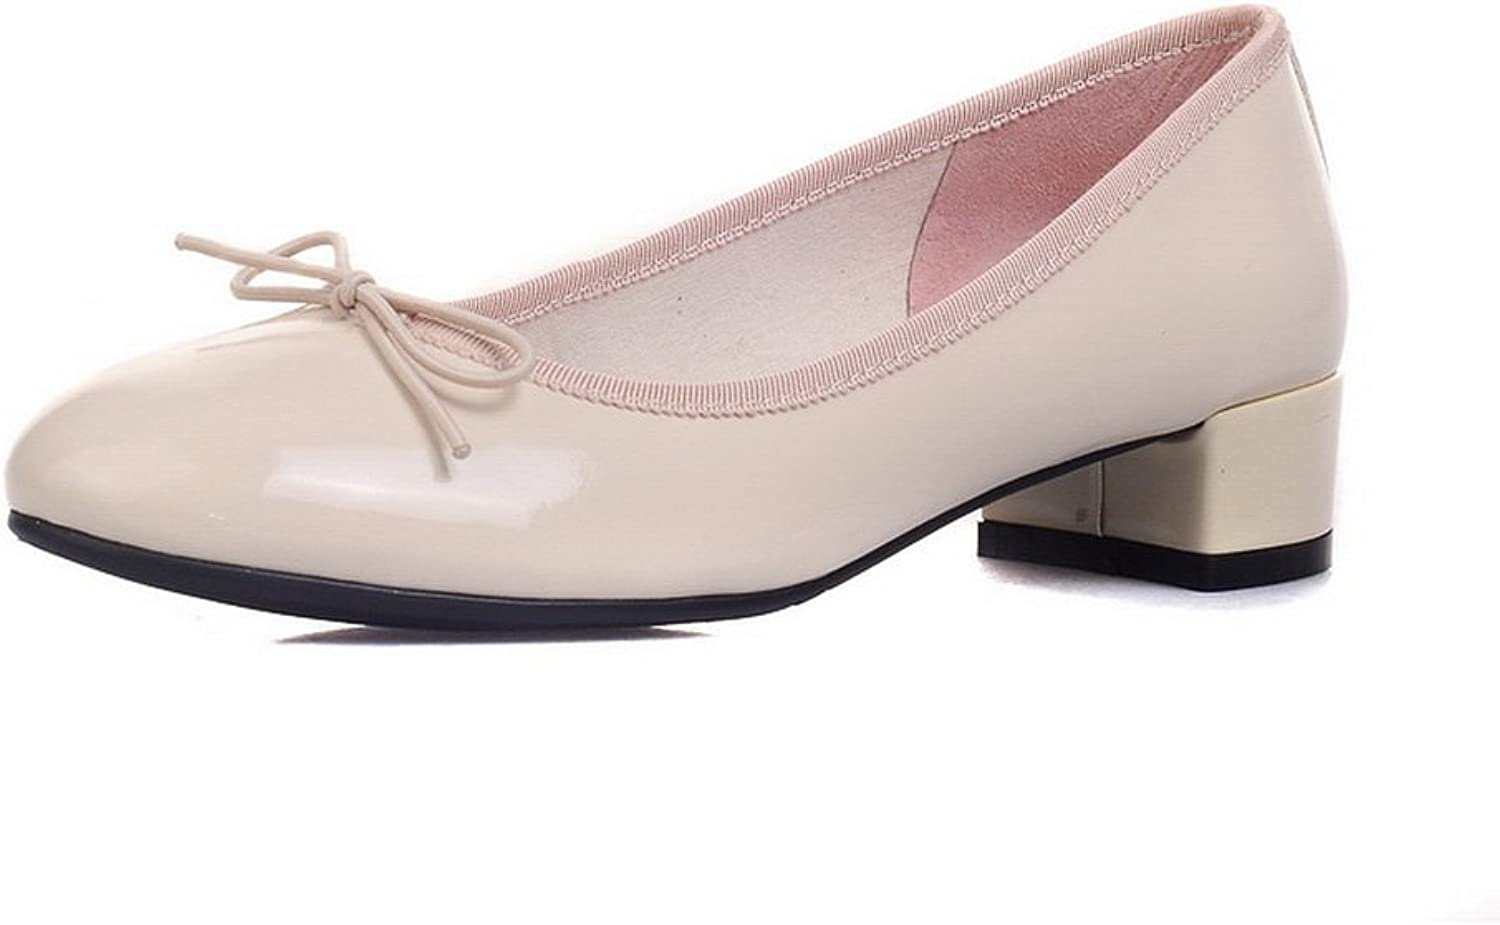 1TO9 Womens Chunky Heels Low-Cut Uppers Round-Toe Patent-Leather Pumps shoes MMS04511